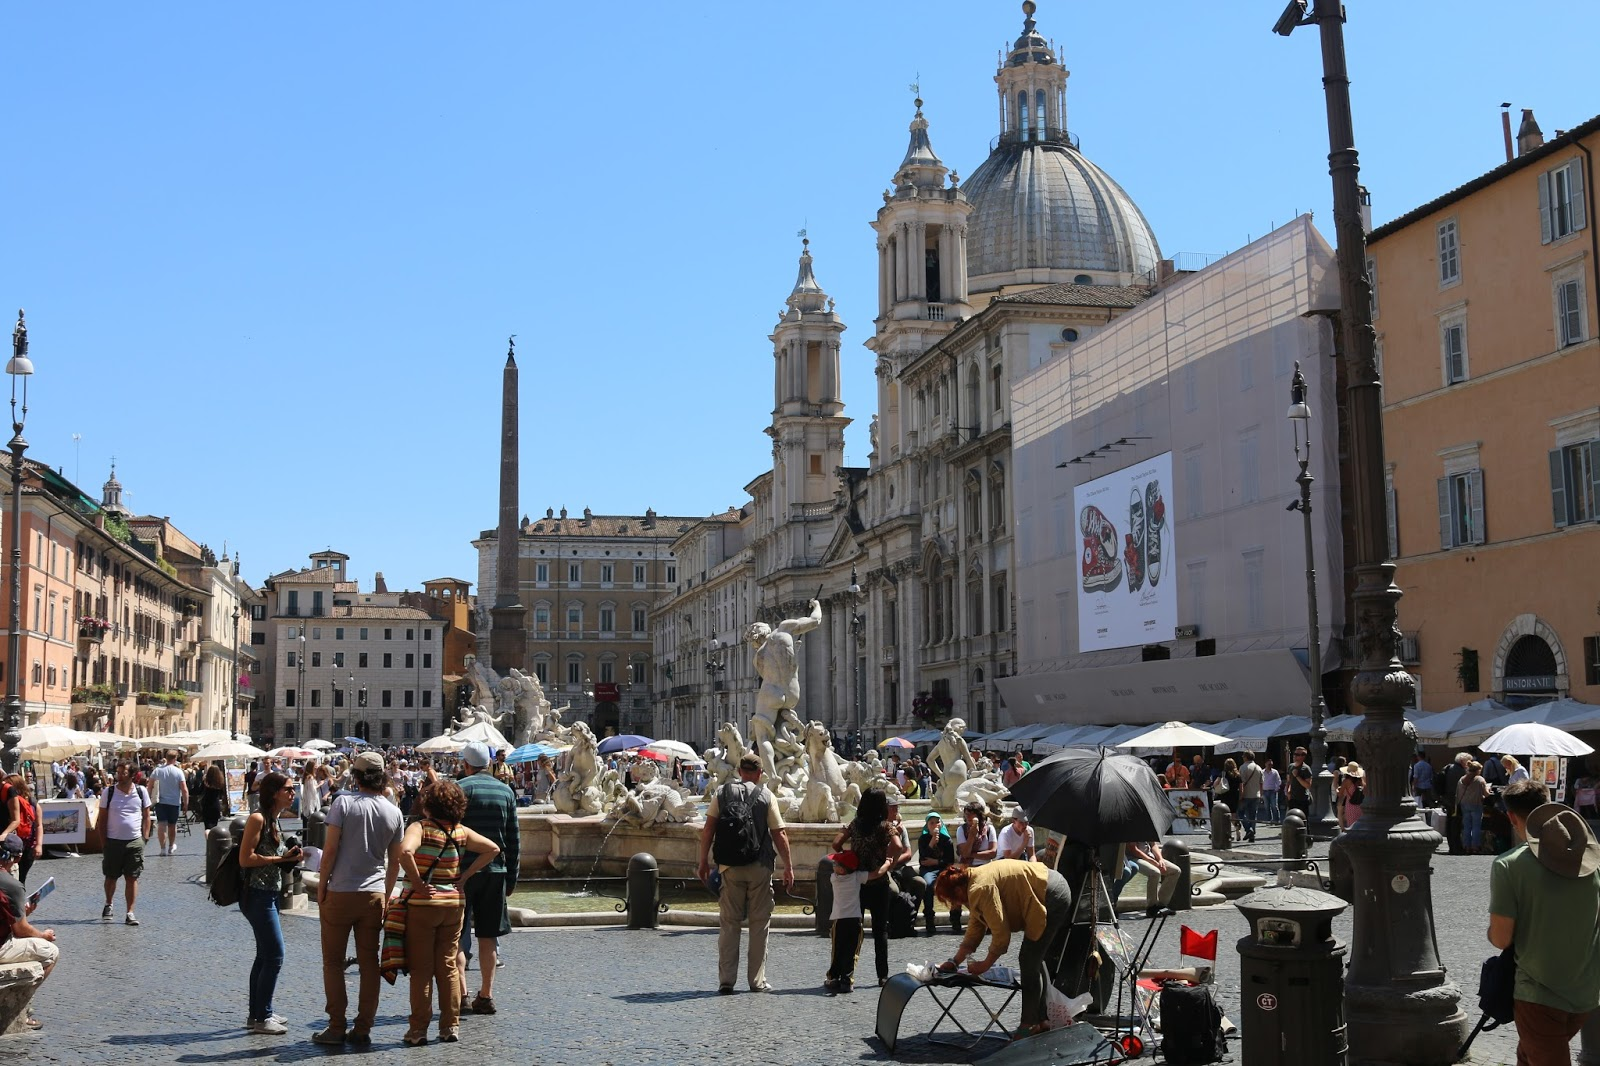 Horse and carriage ride in rome